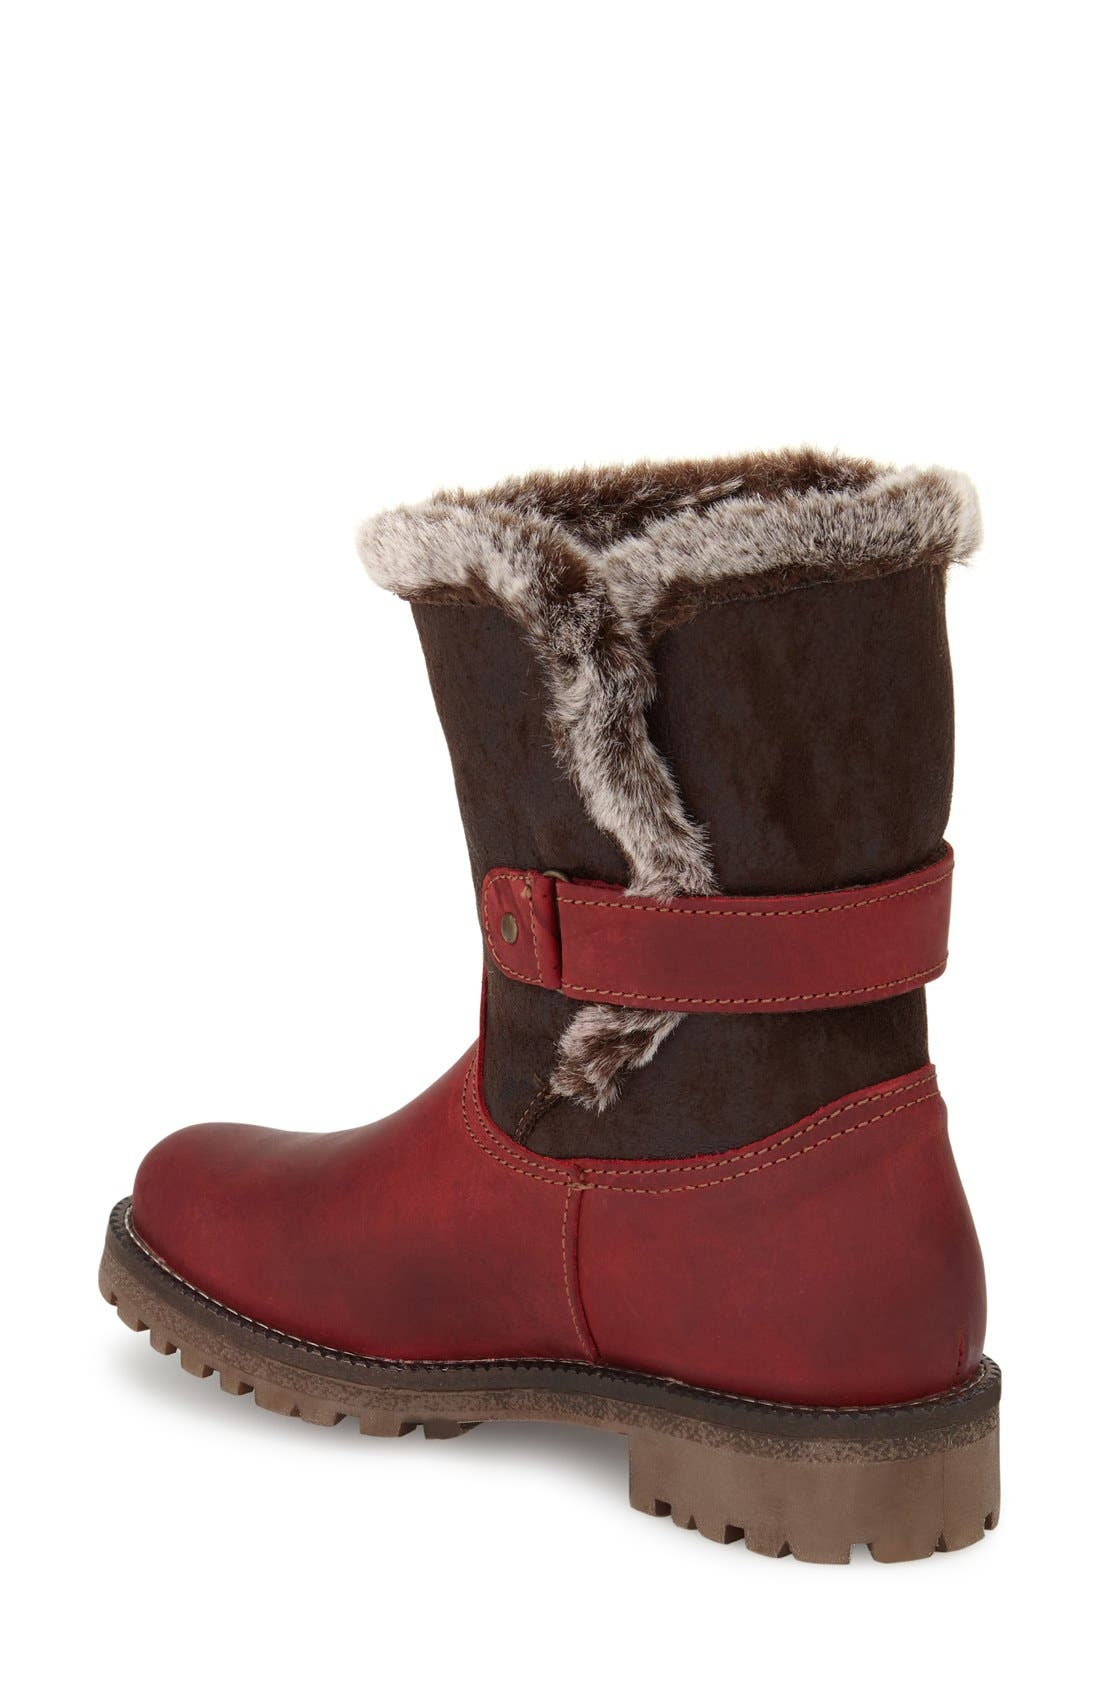 Alternate Image 2  - Bos. & Co. Candy Waterproof Boot with Faux Fur Trim (Women)